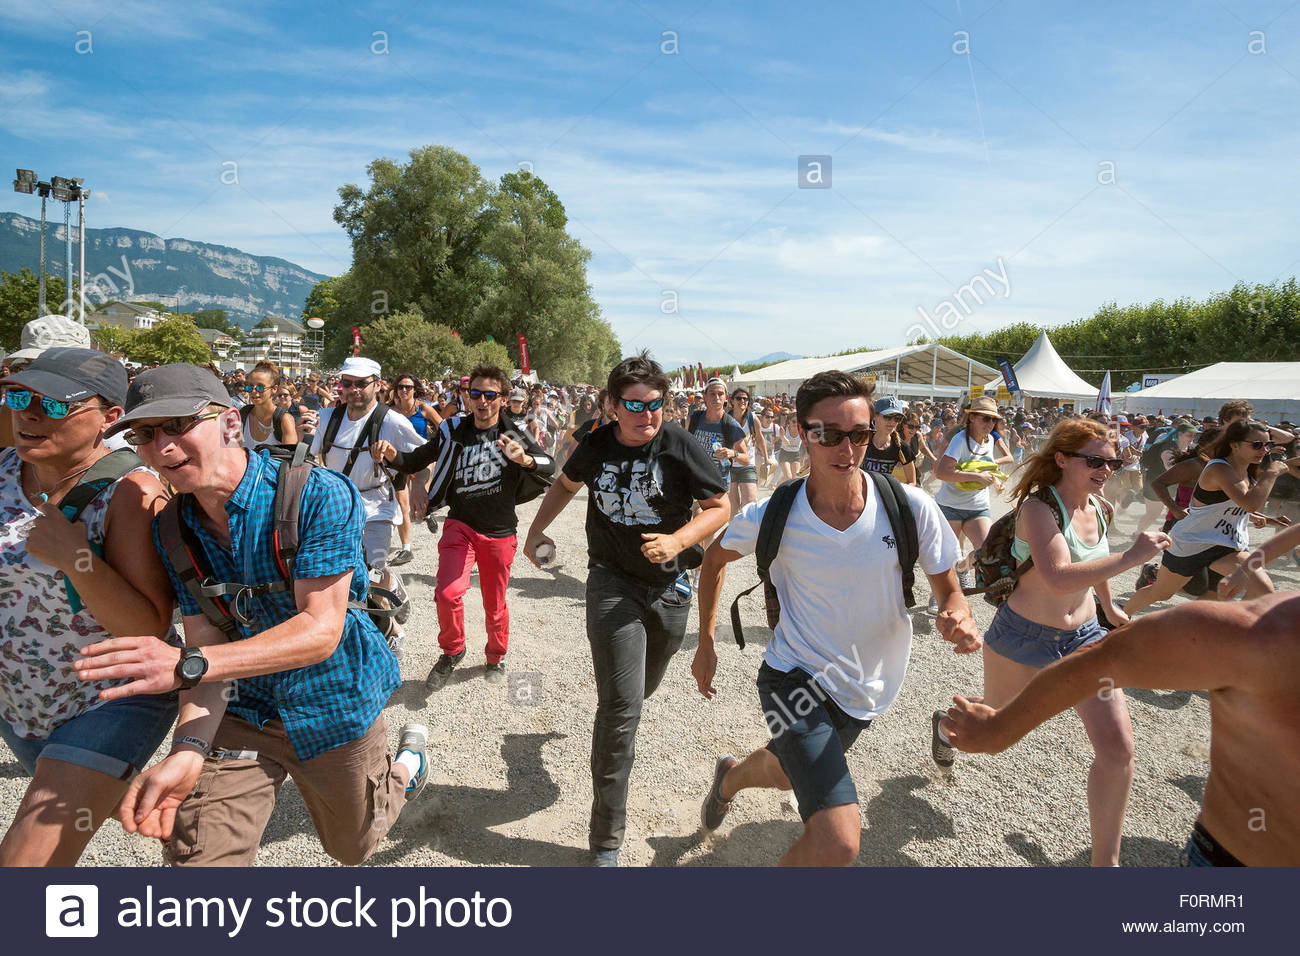 Young people running to see their favorite band at Musilac pop rock music Festival - Stock Image